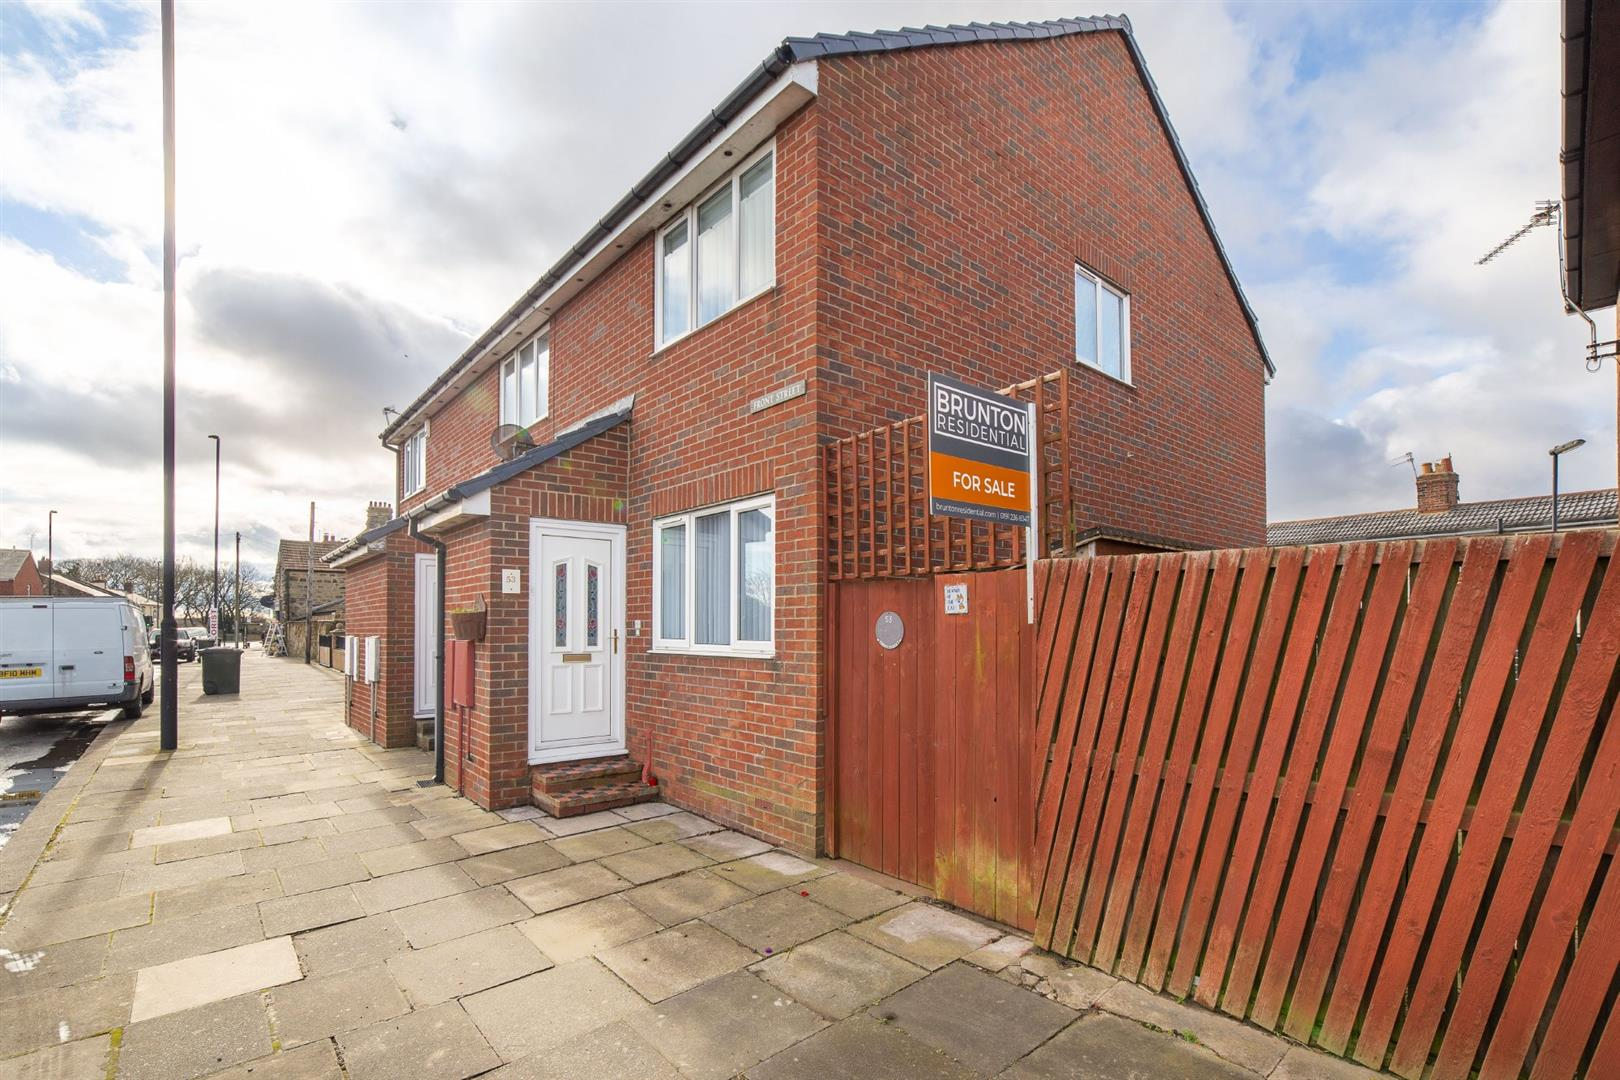 2 bed end of terrace house for sale in Seaton Burn, NE13 6EP  - Property Image 1